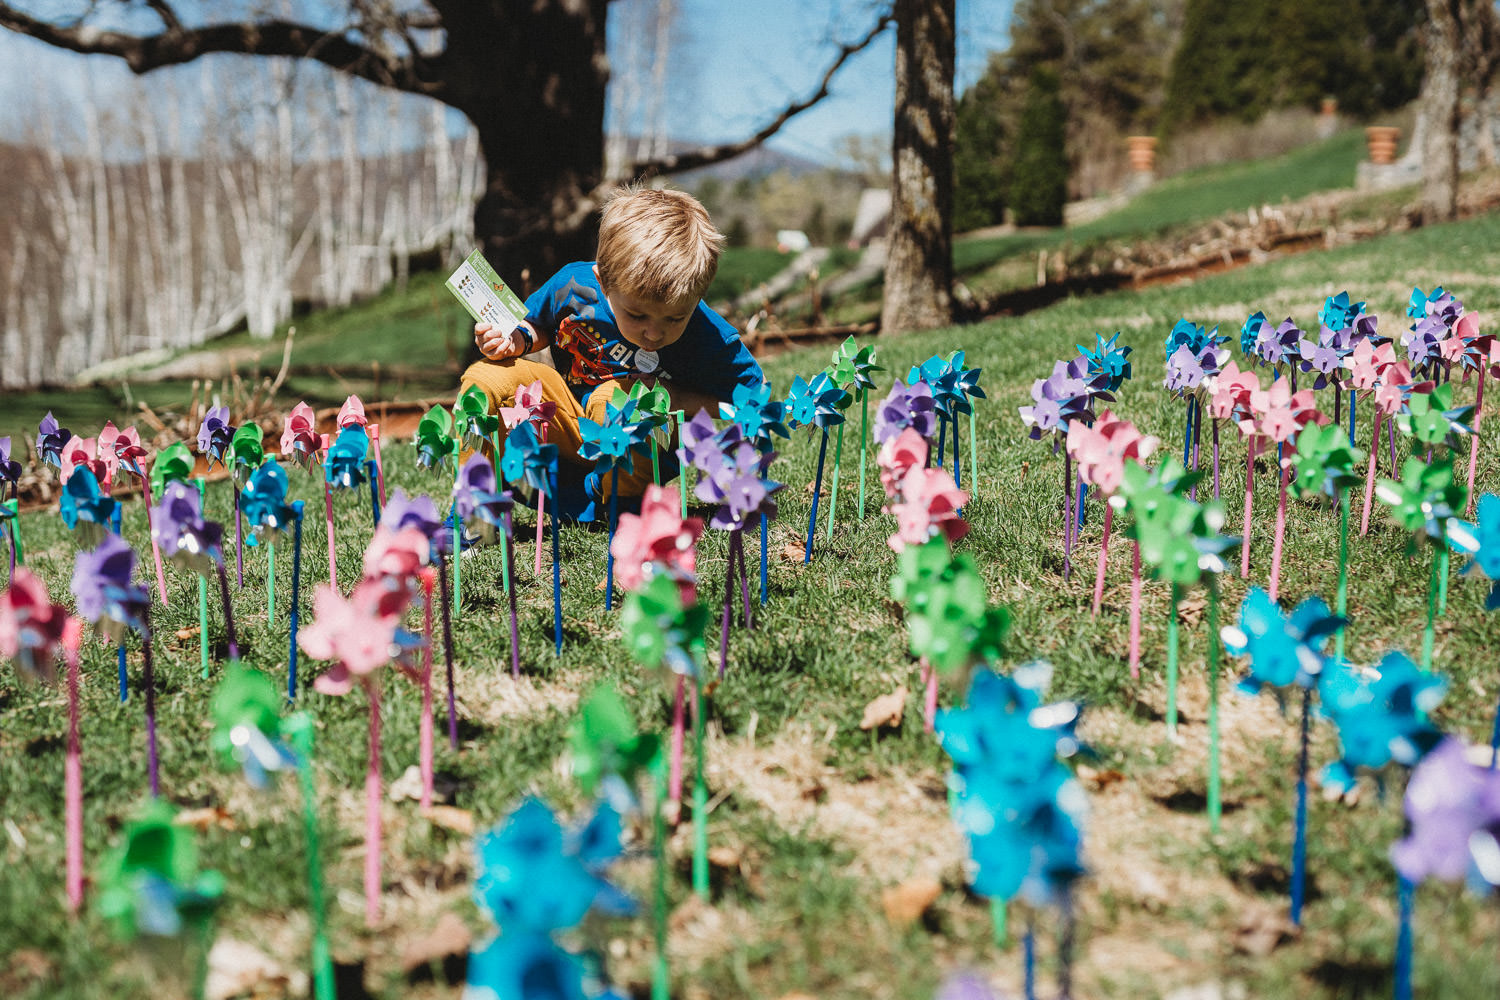 A child crouches down near an installation of pinwheels.